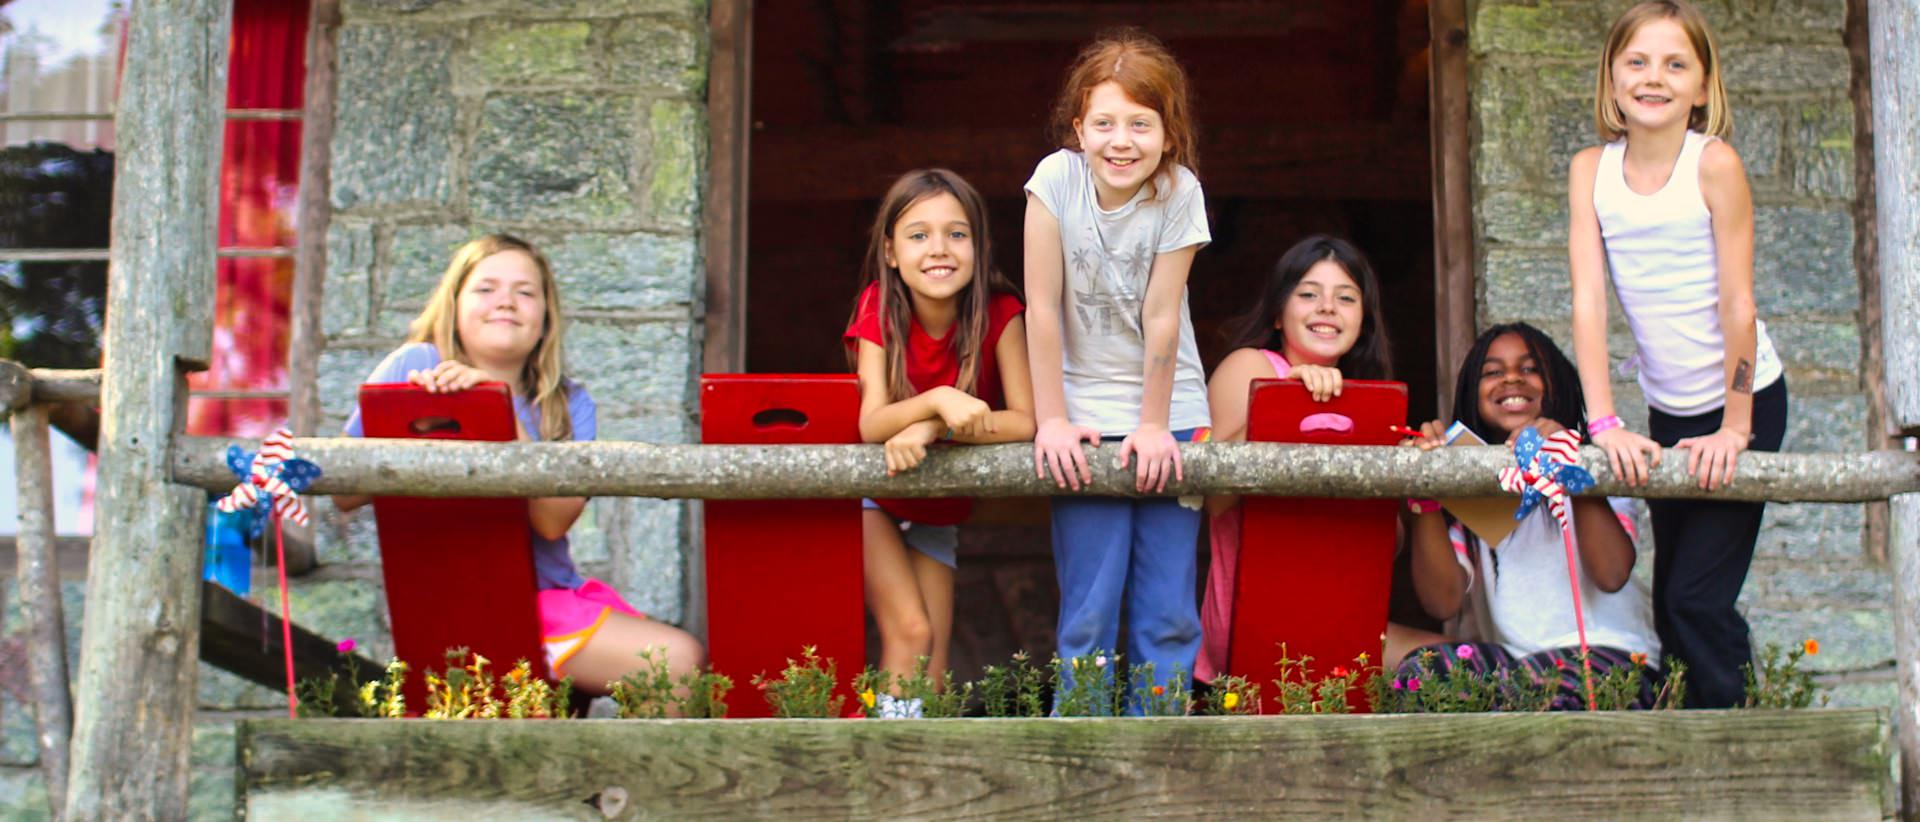 young camp girls on porch